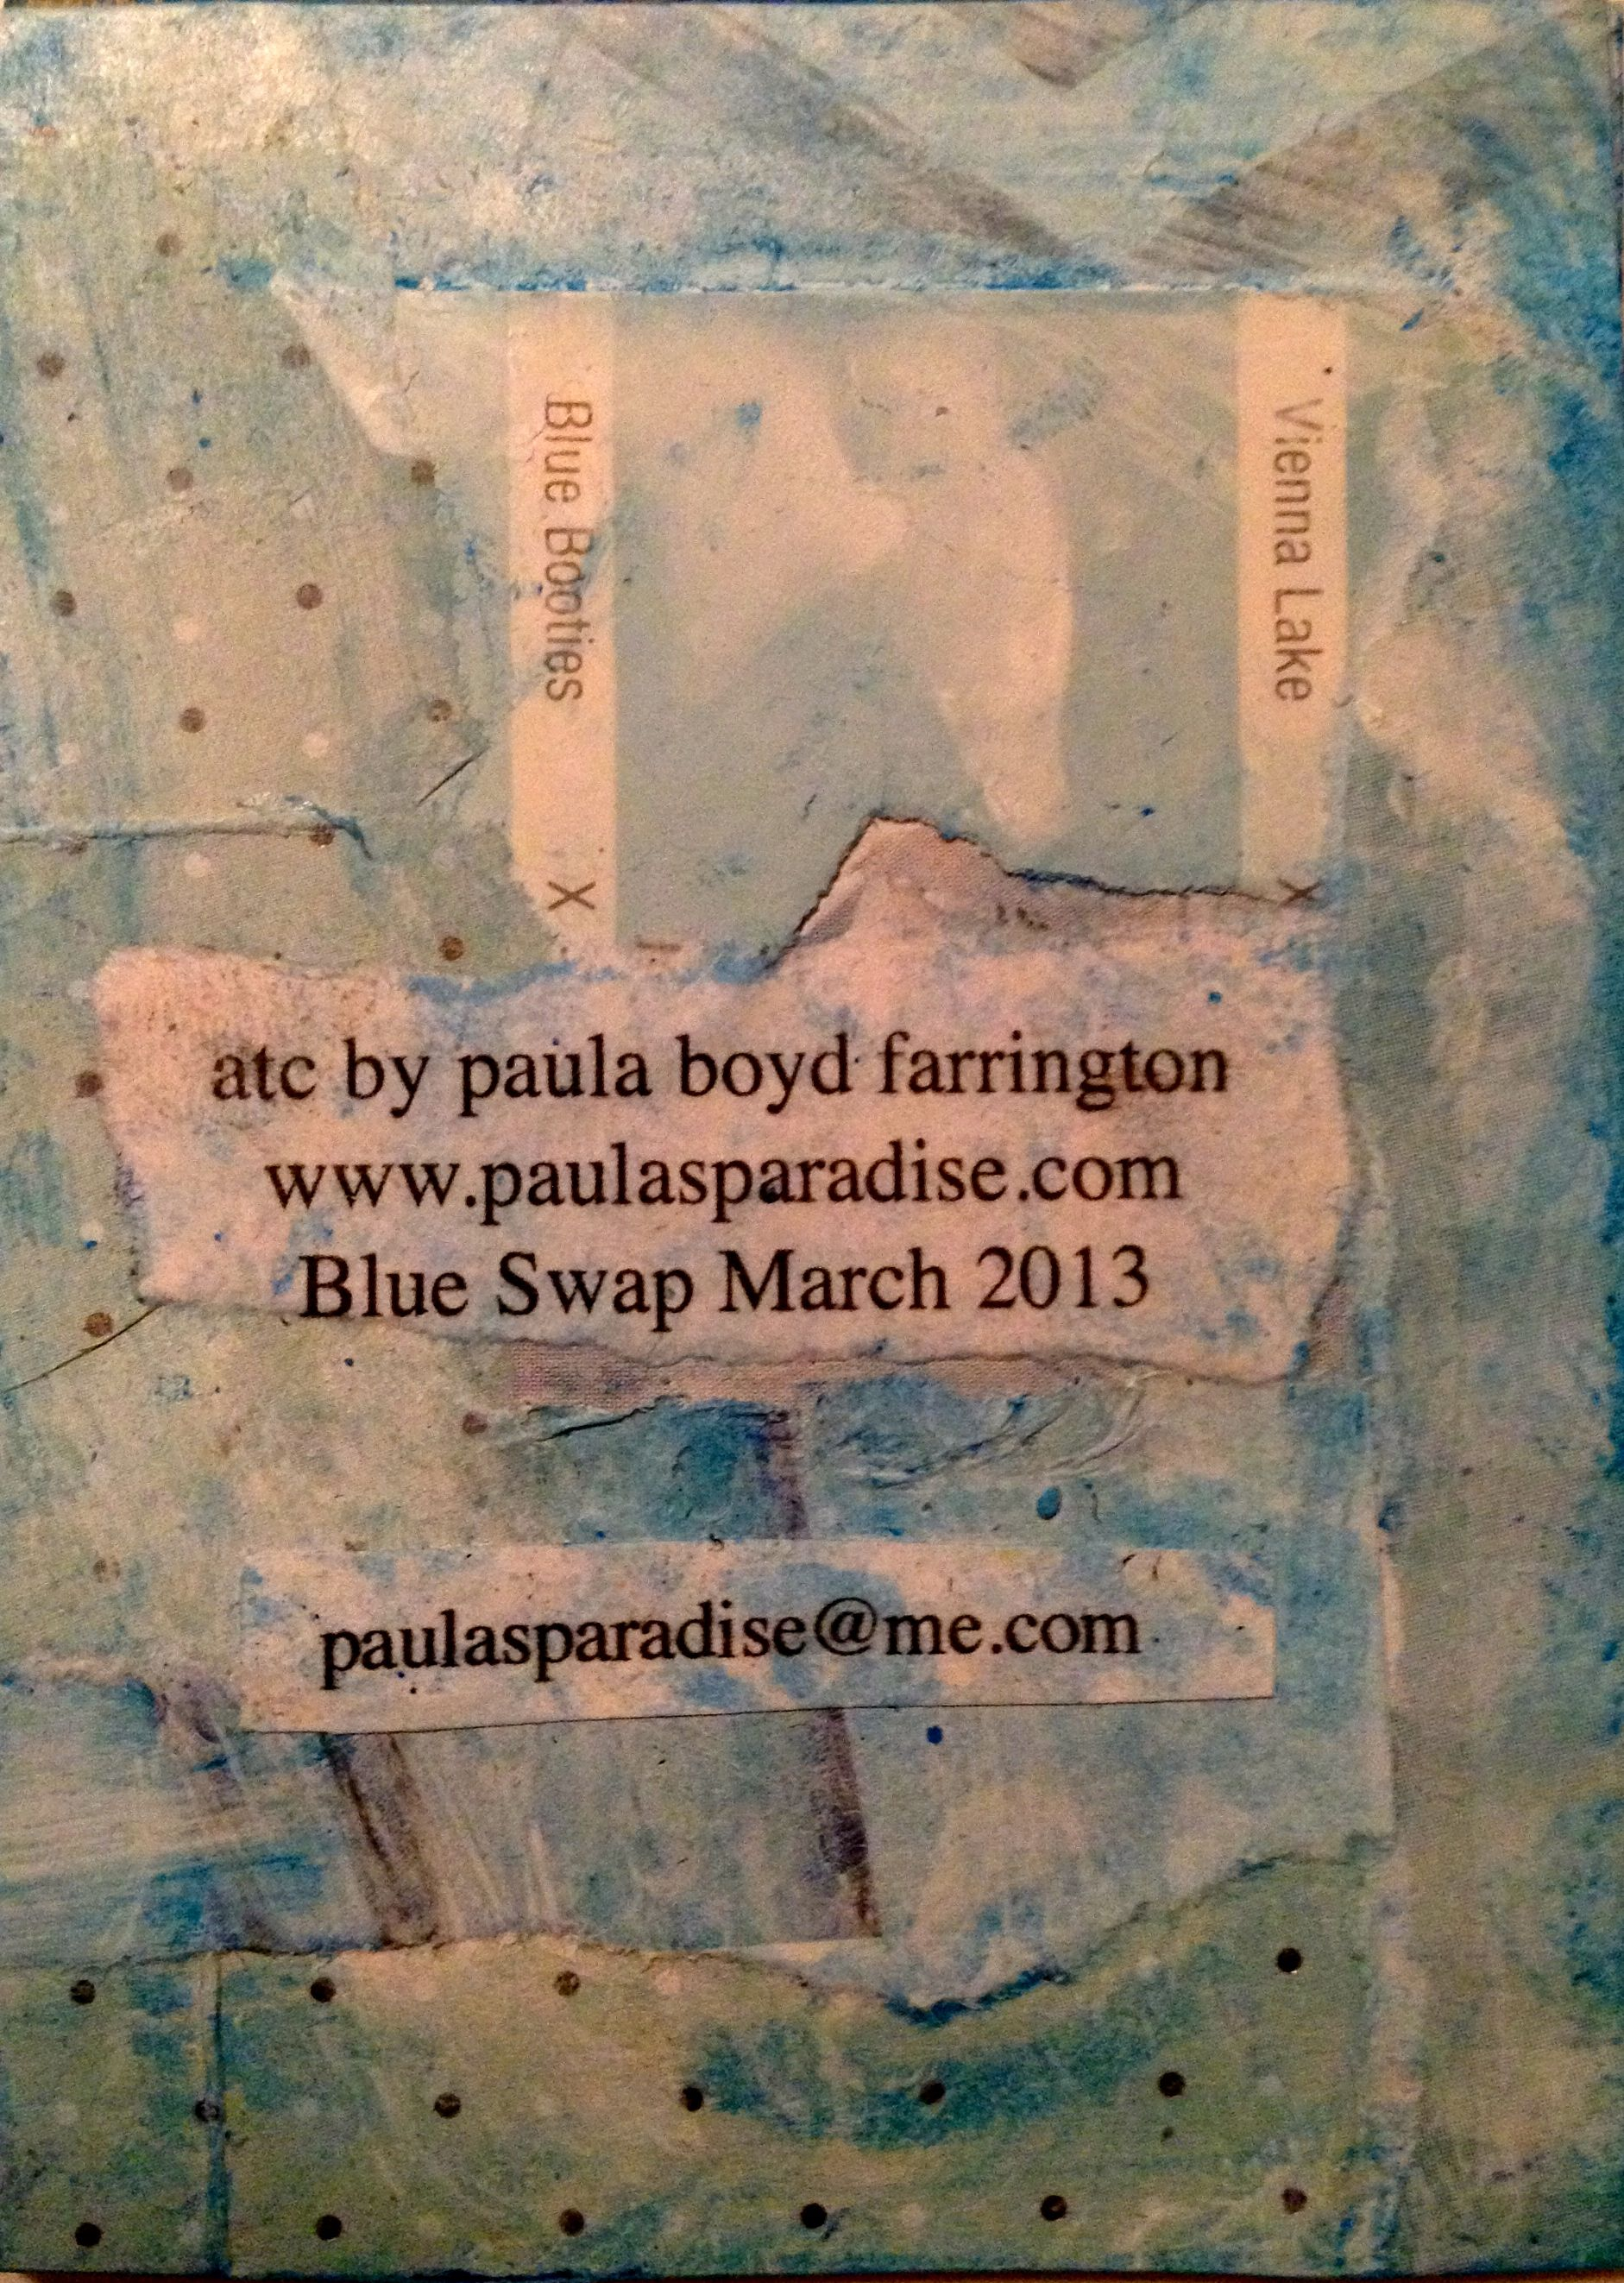 all images © Paula Boyd Farrington